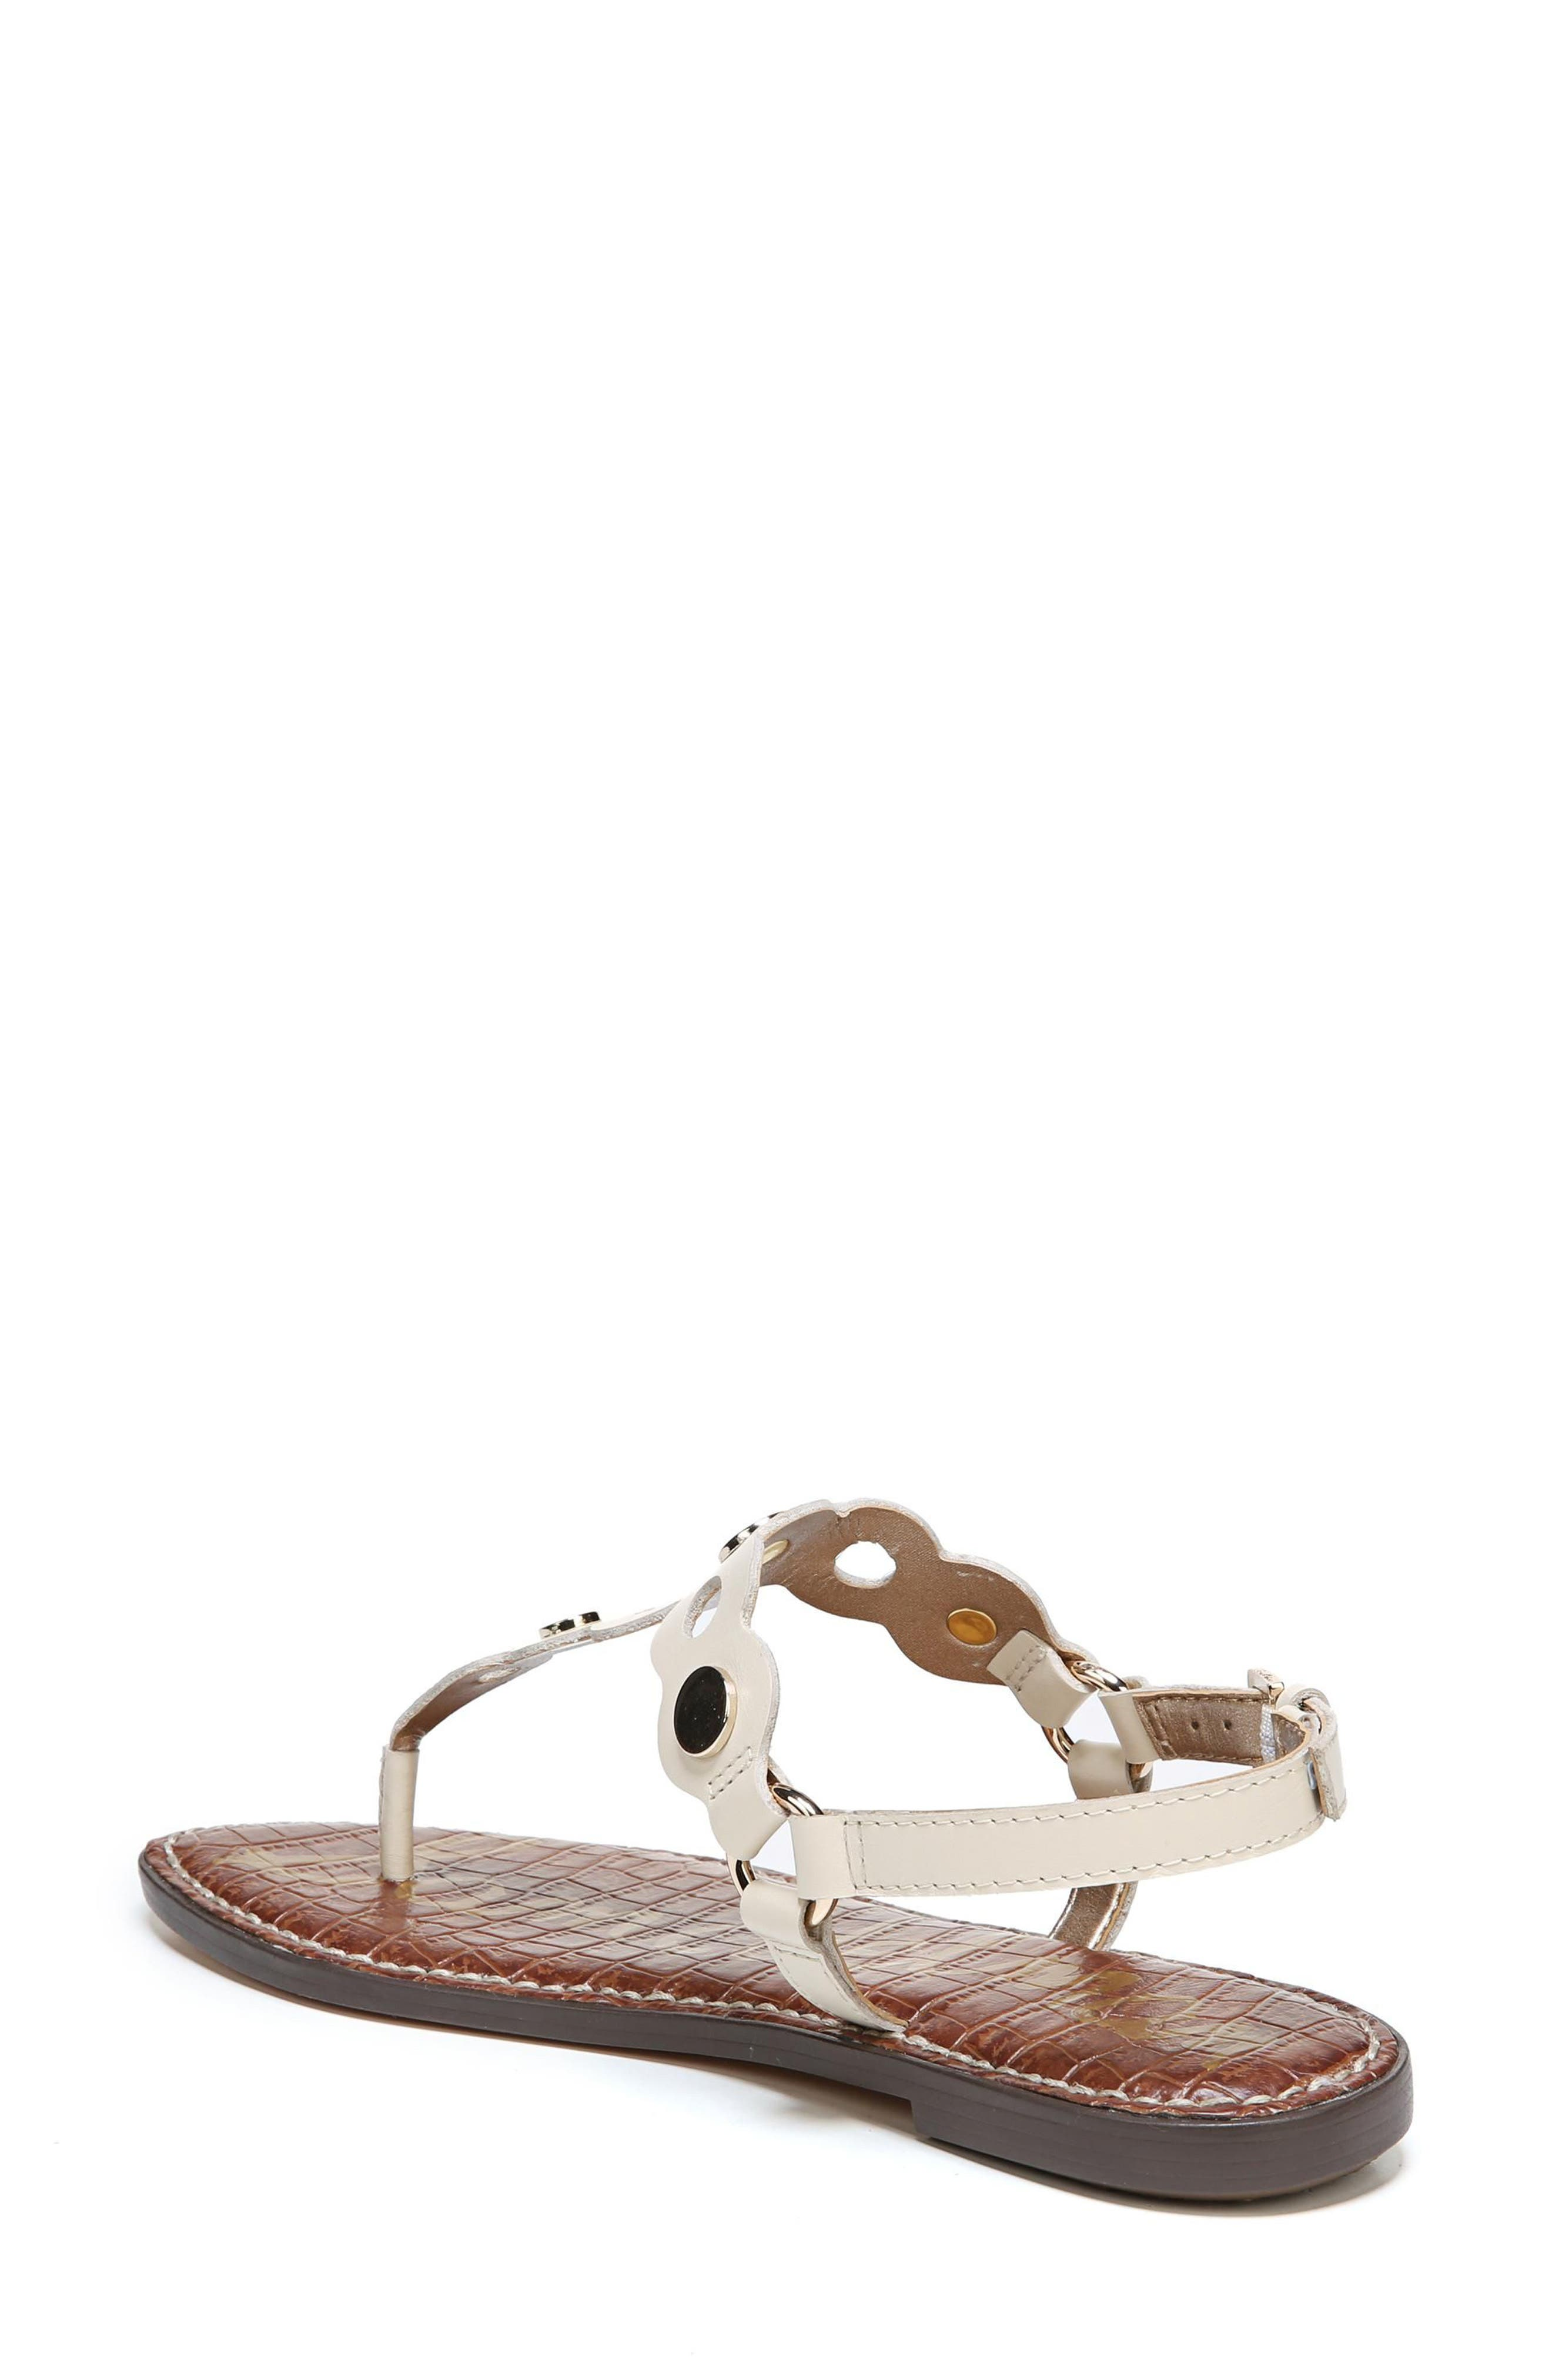 Gilly T-Strap Sandal,                             Alternate thumbnail 7, color,